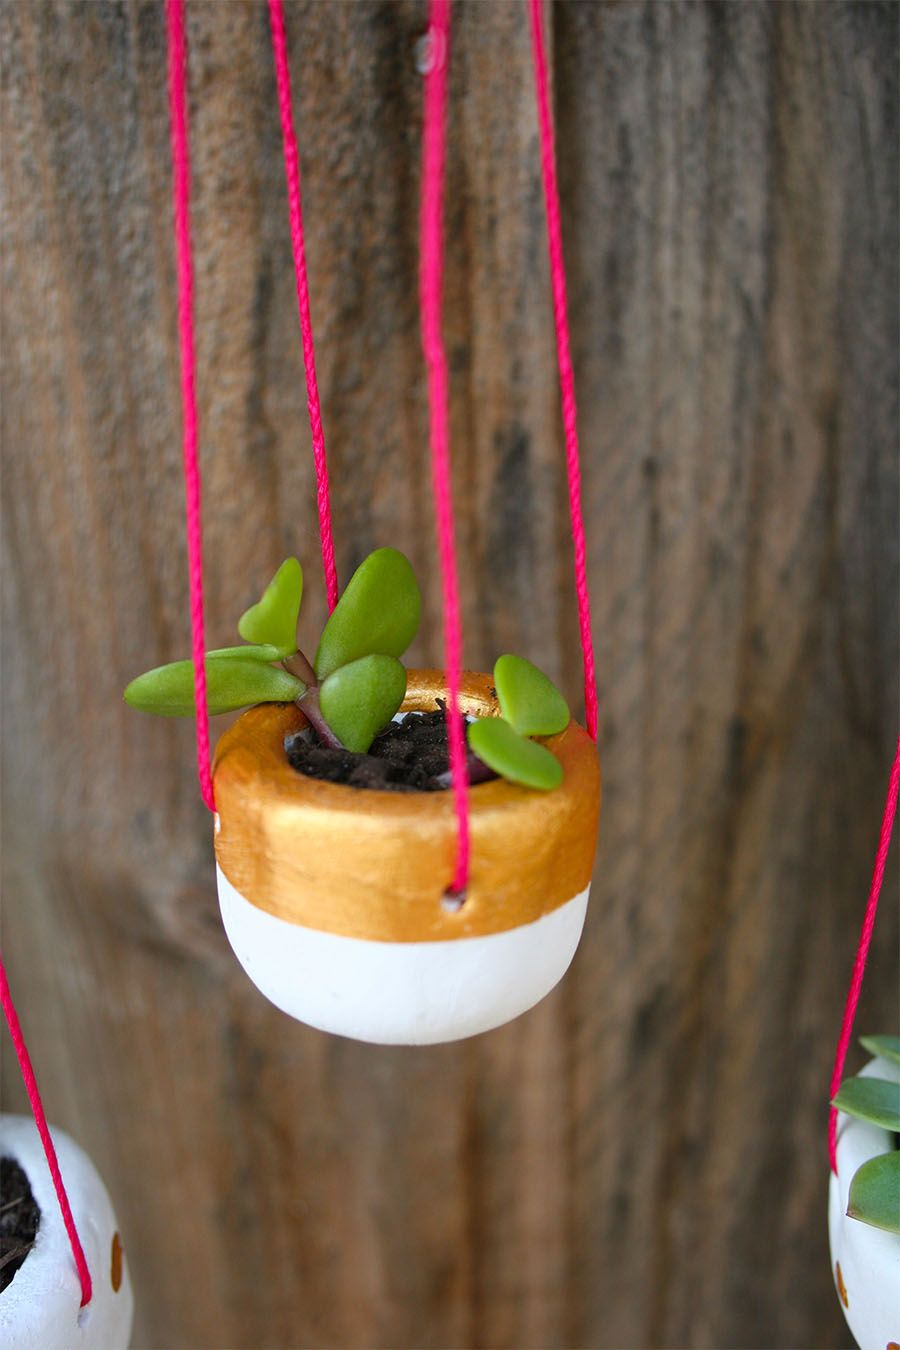 DIY Hanging Planter Diy hanging planter, Hanging